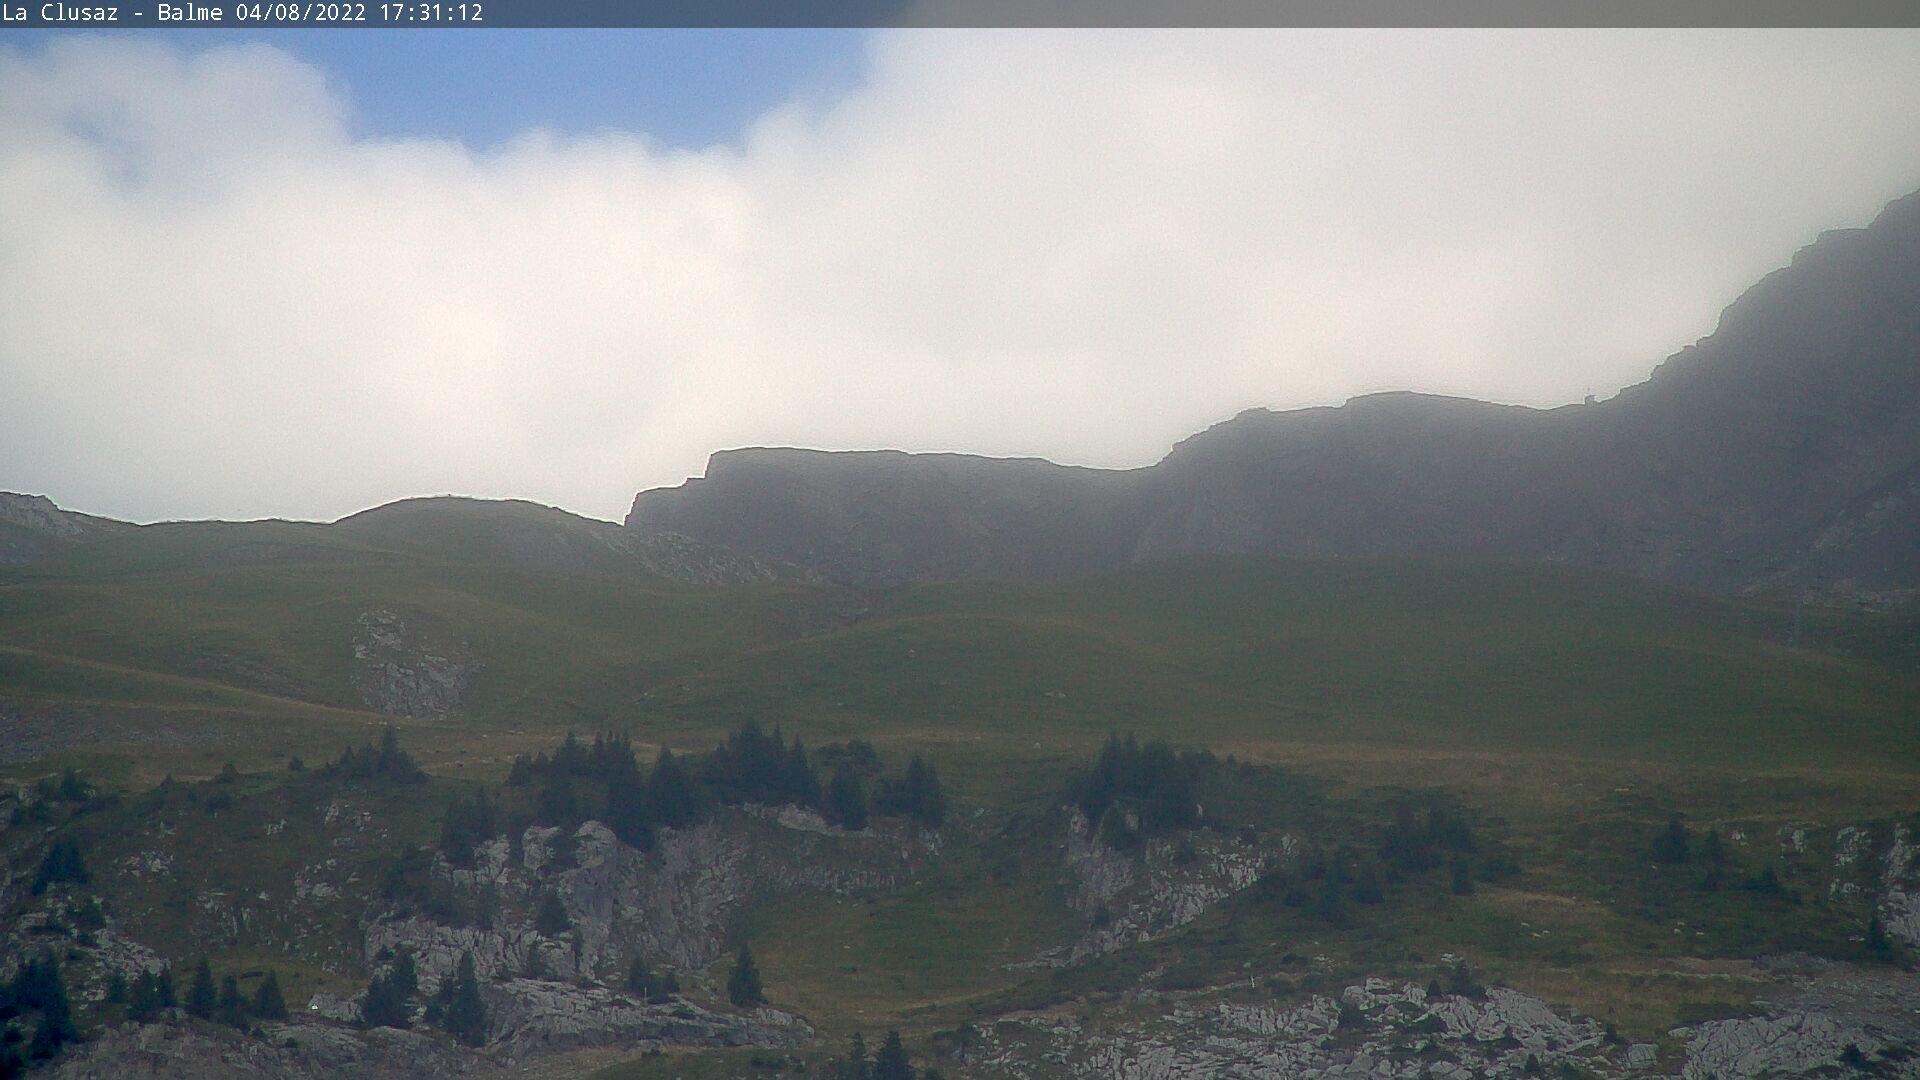 La Clusaz webcam showing La Balme and La Bergerie